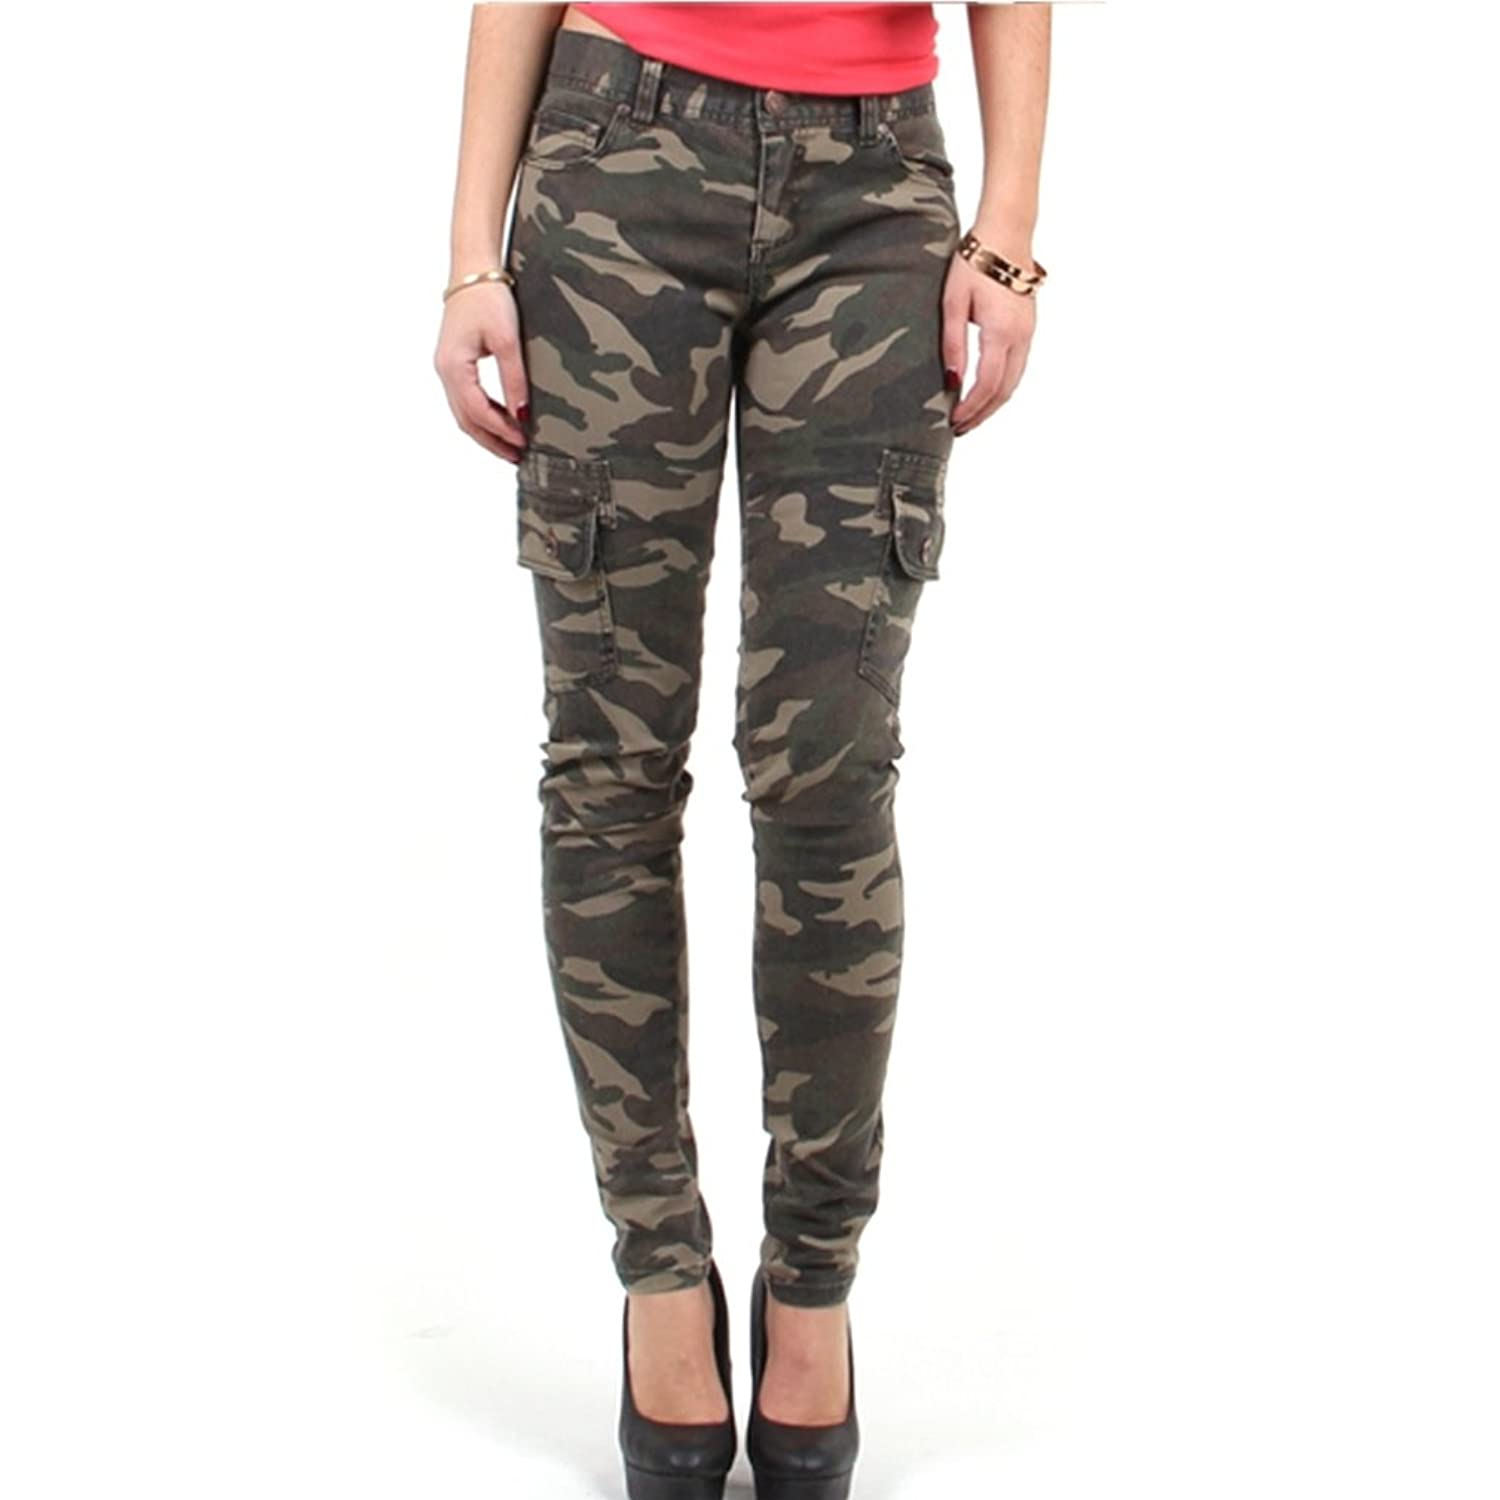 Red Fox Girls' Camo Skinny Cargo Pants Olive at Amazon Women's ...